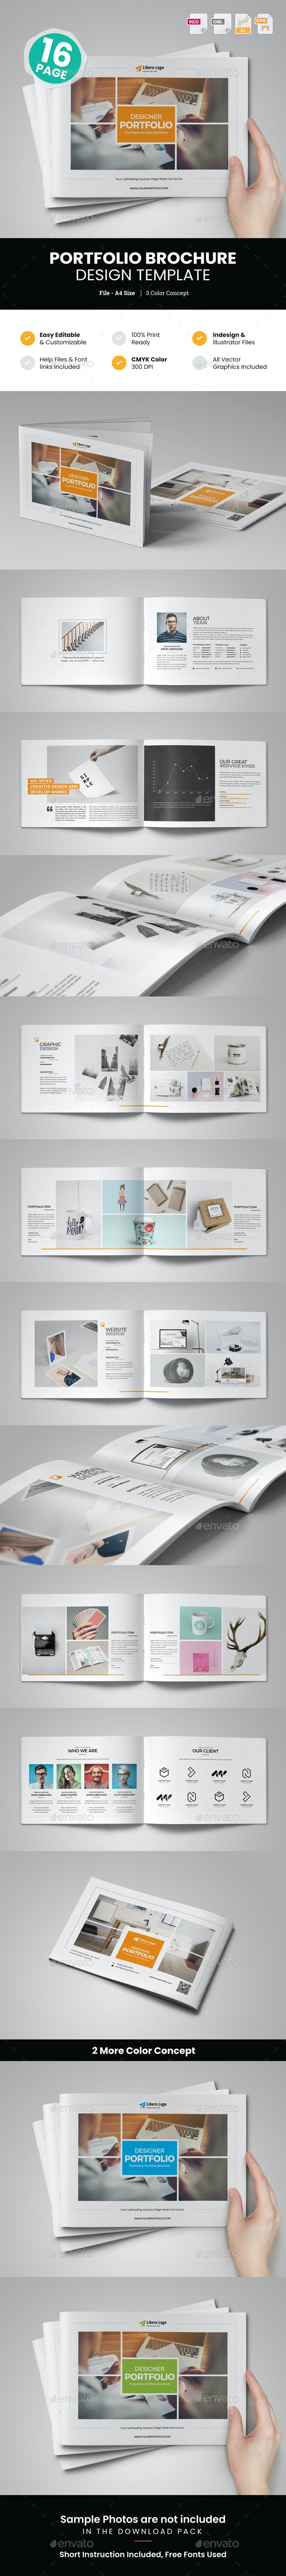 Portfolio Brochure Design v6 - Corporate Brochures